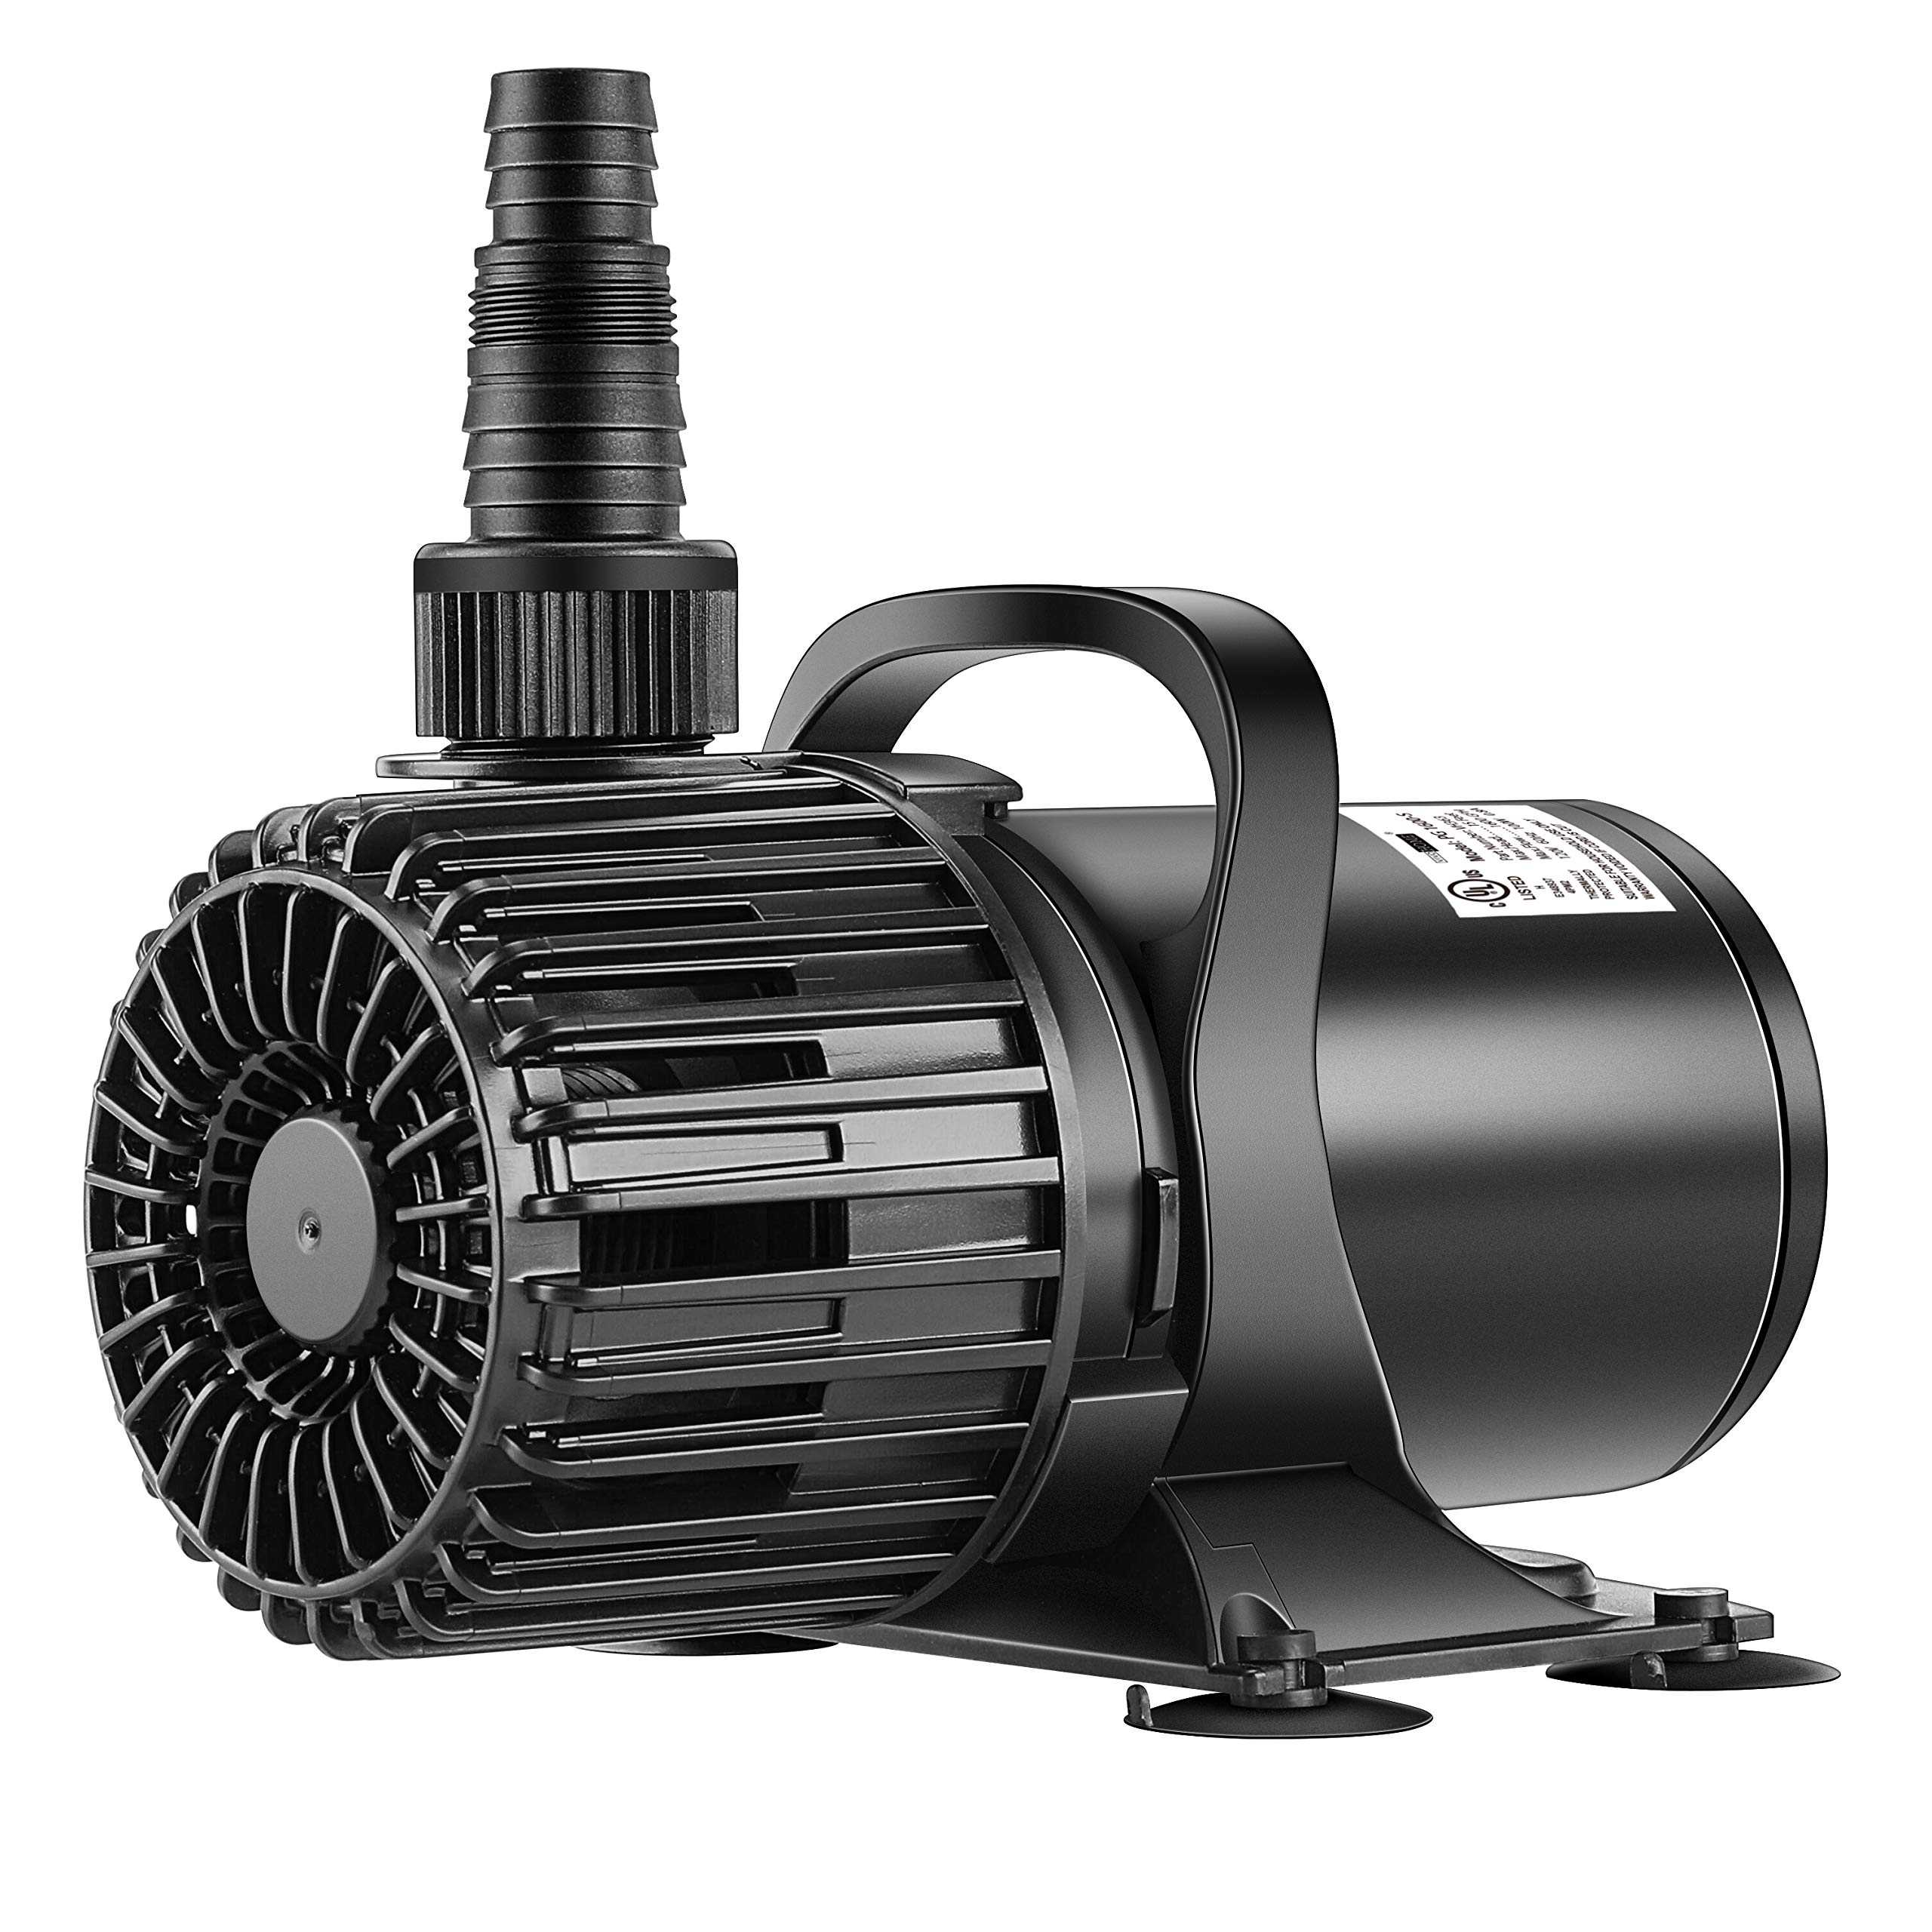 VIVOHOME Electric 220W 4500GPH Submersible Water Pump for Koi Pond Pool Waterfall Fountains Fish Tank and Aquarium